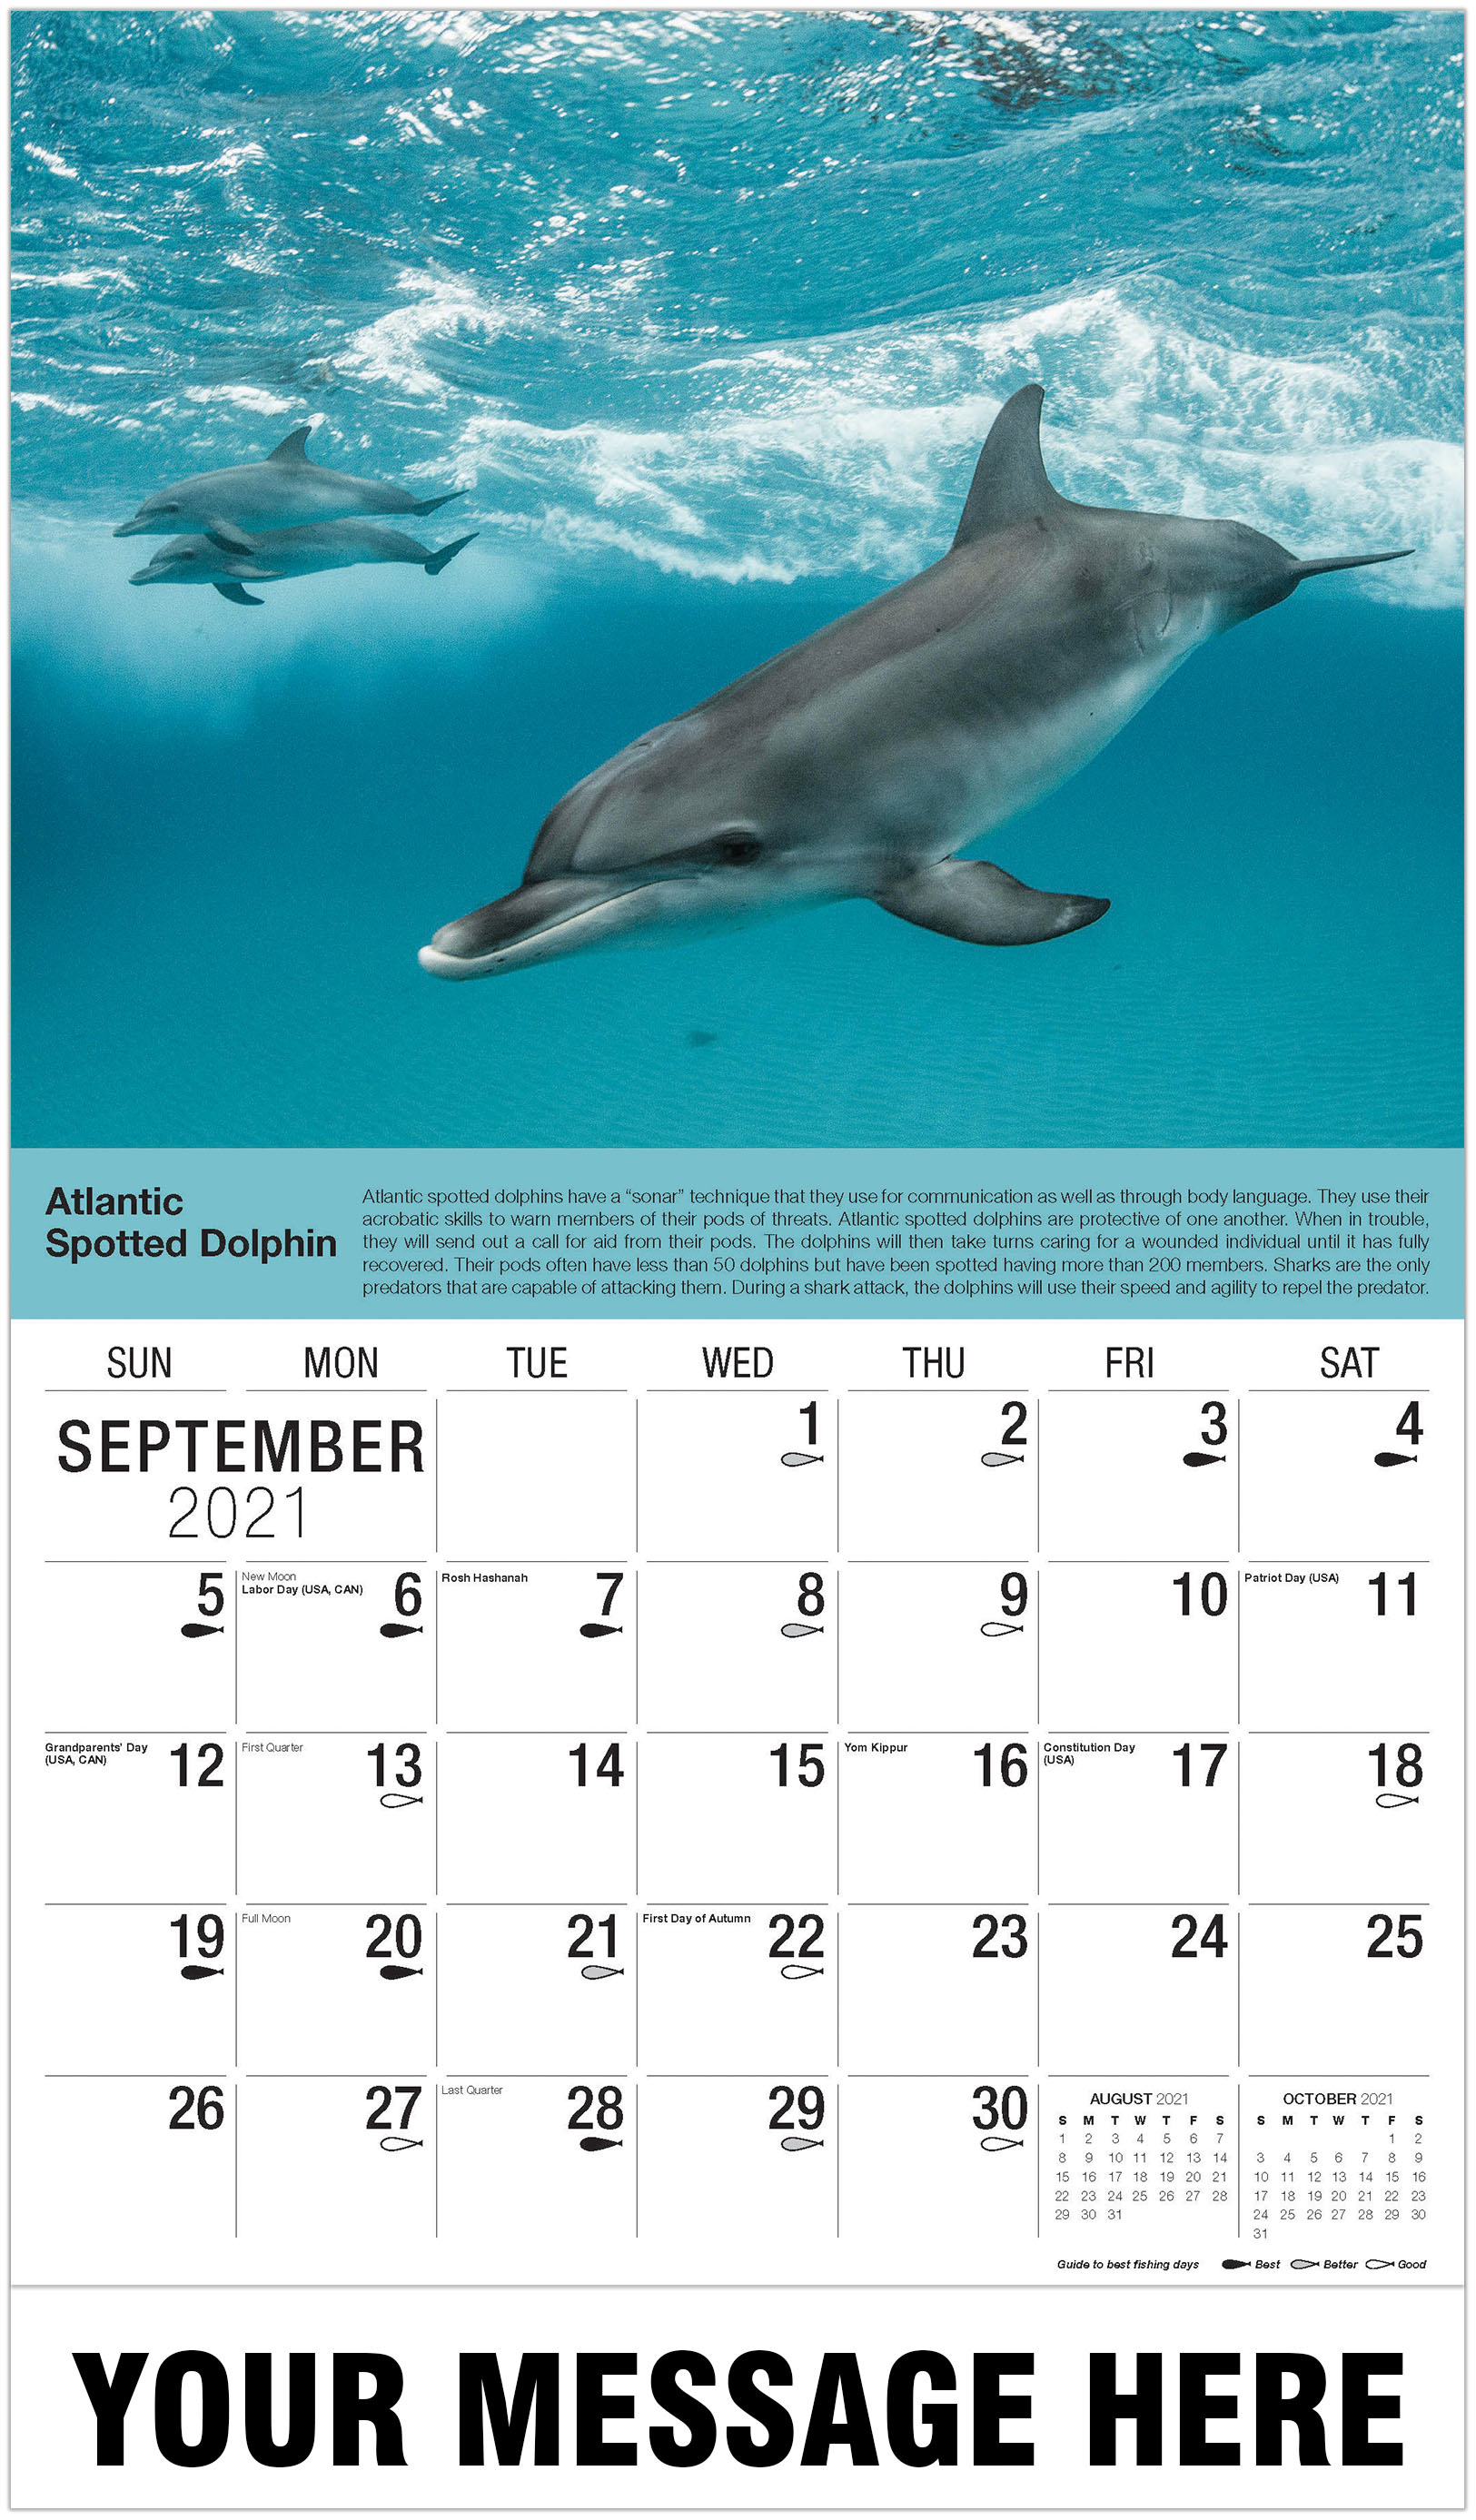 Atlantic Spotted Dolphins - September - North American Wildlife 2021 Promotional Calendar